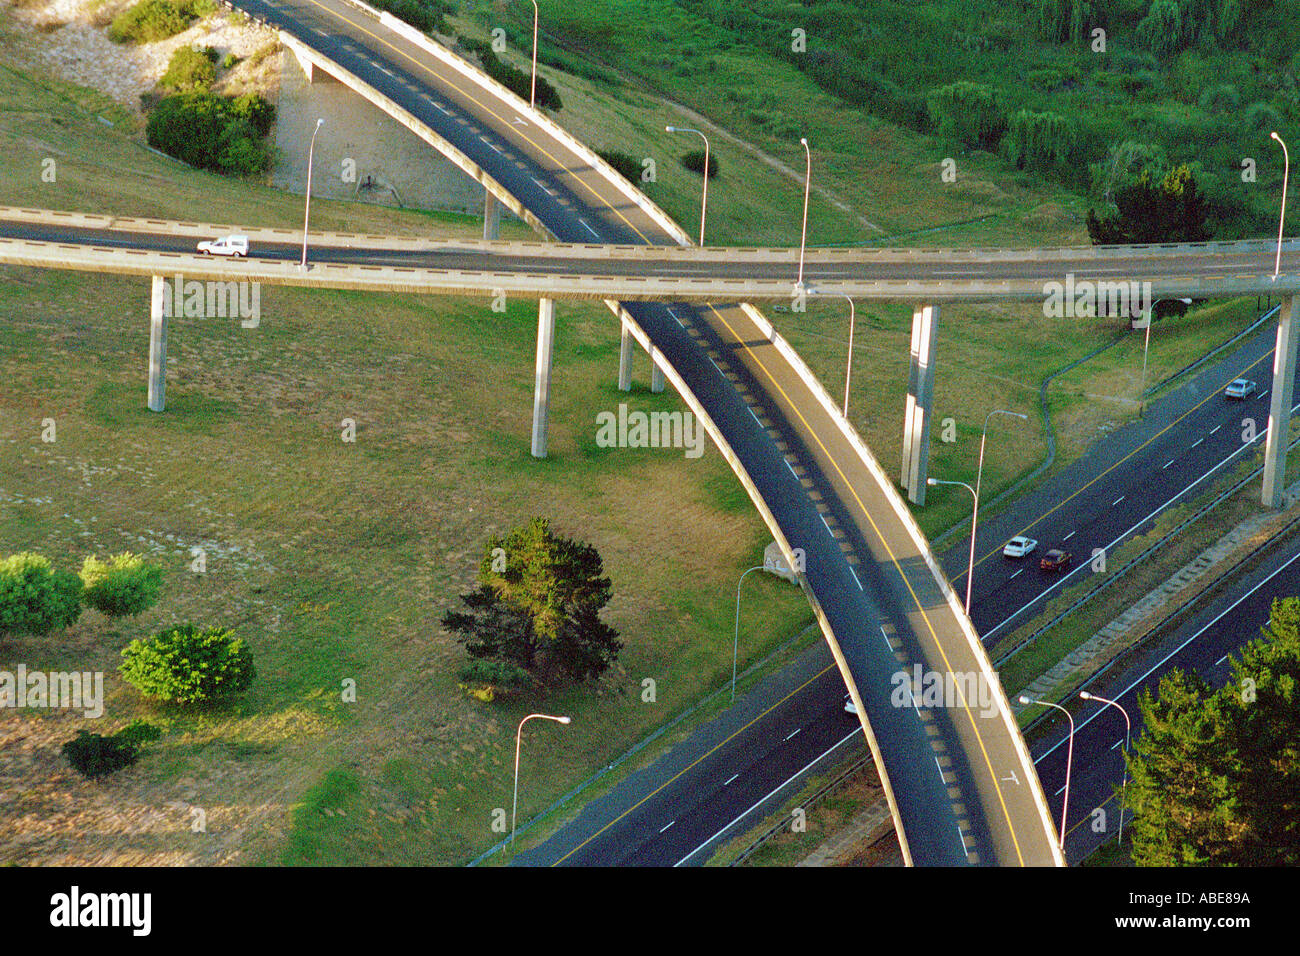 Suspended roads - Stock Image